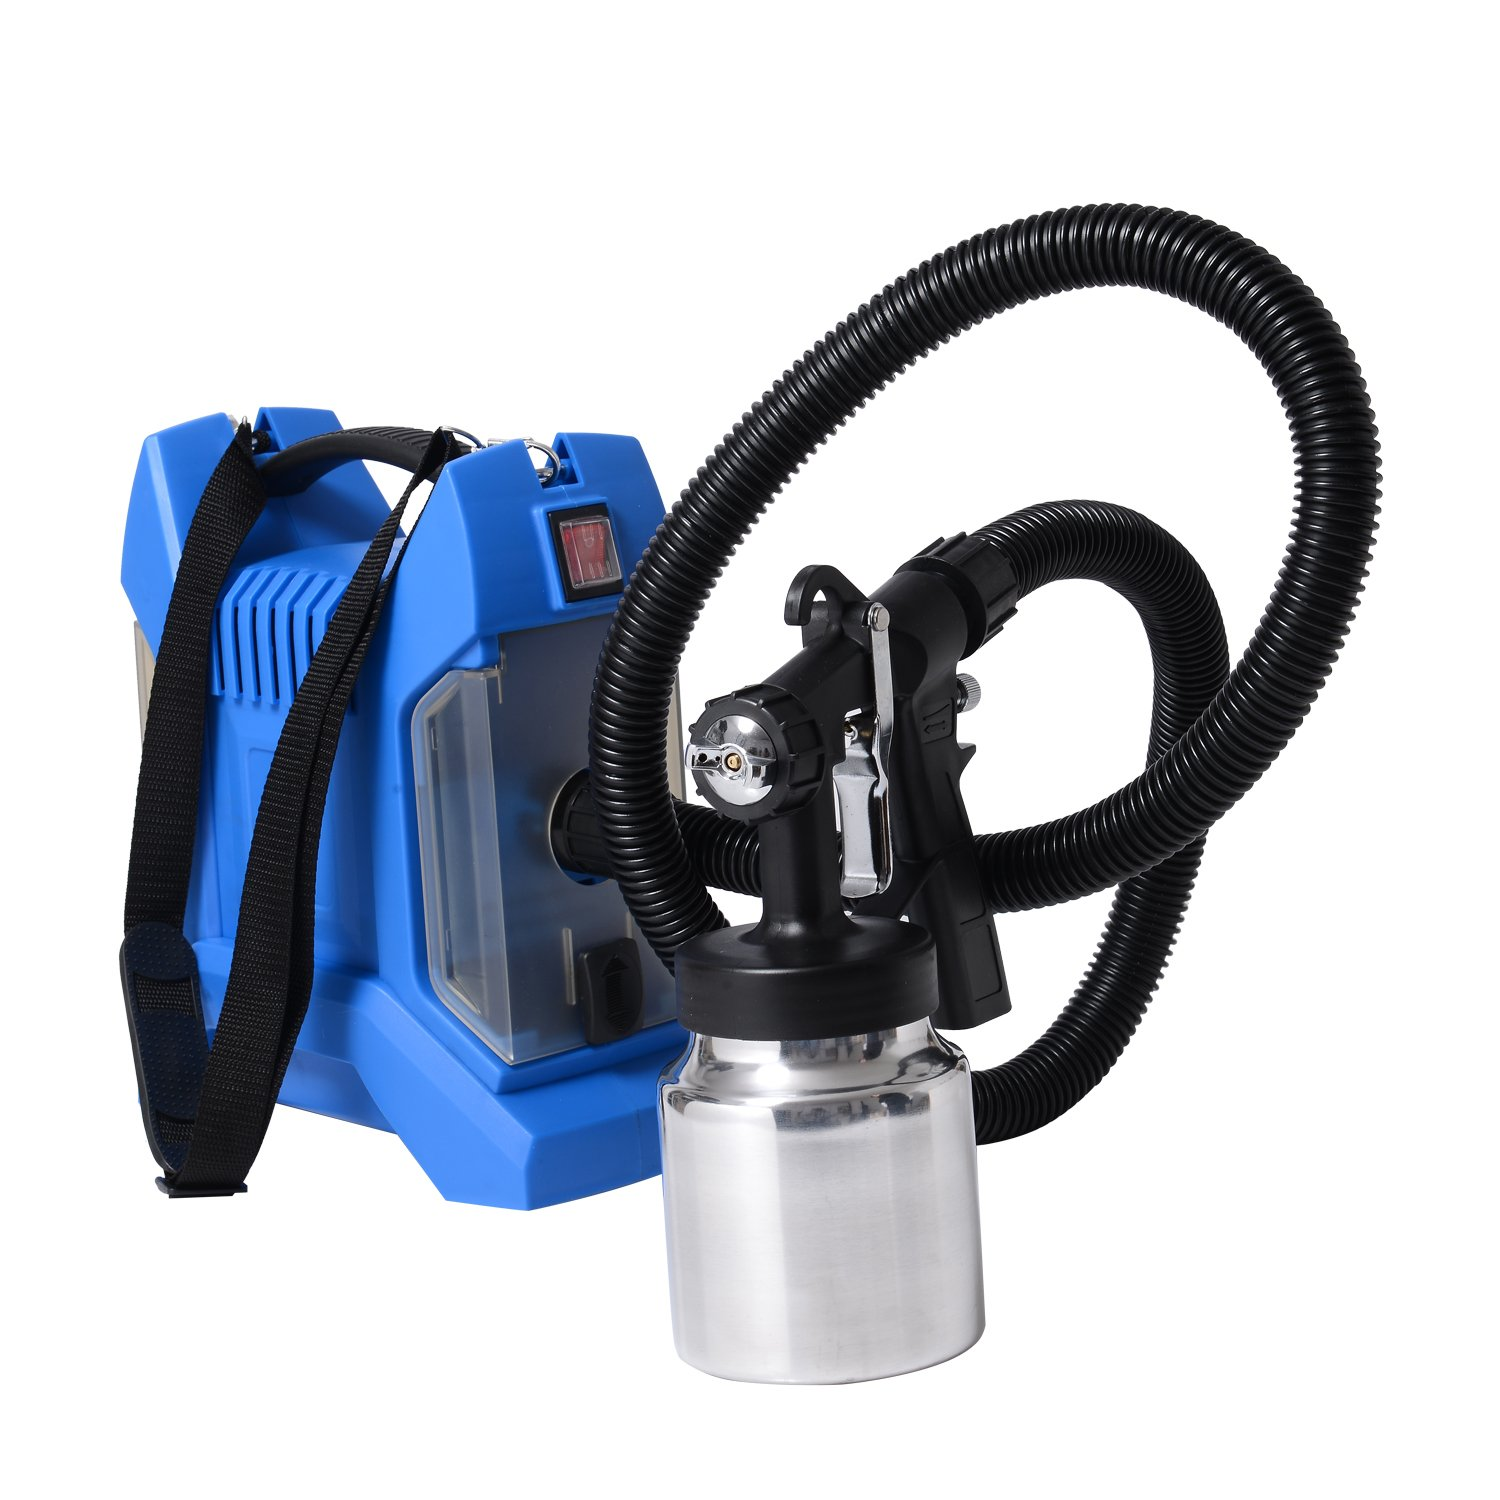 H omCom 650W HVLP Electric Paint Sprayer Spray Kit